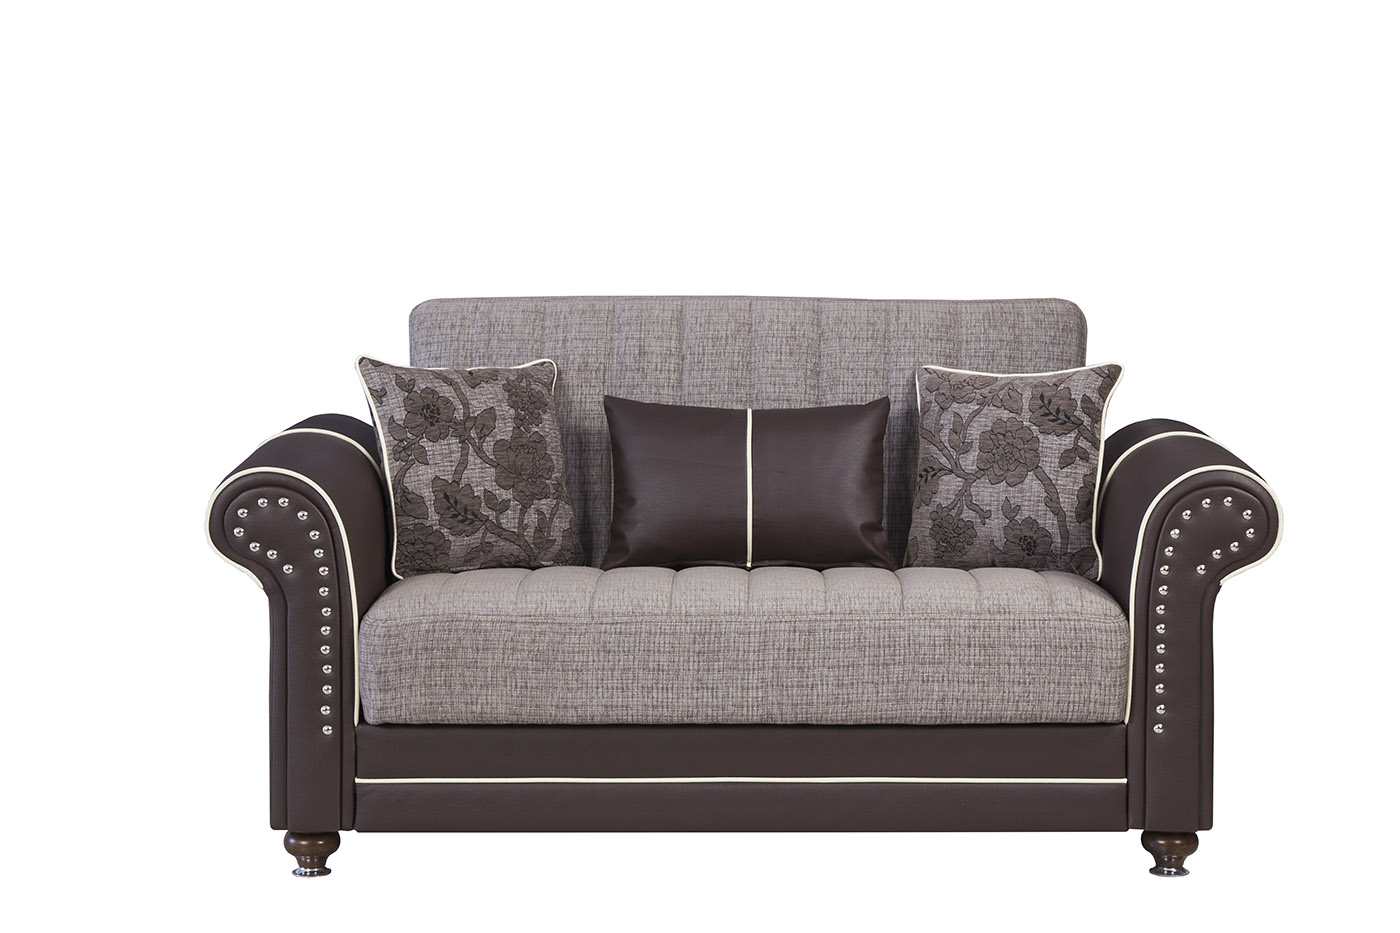 Royal Home Quantro Brown Convertible Loveseat by Casamode